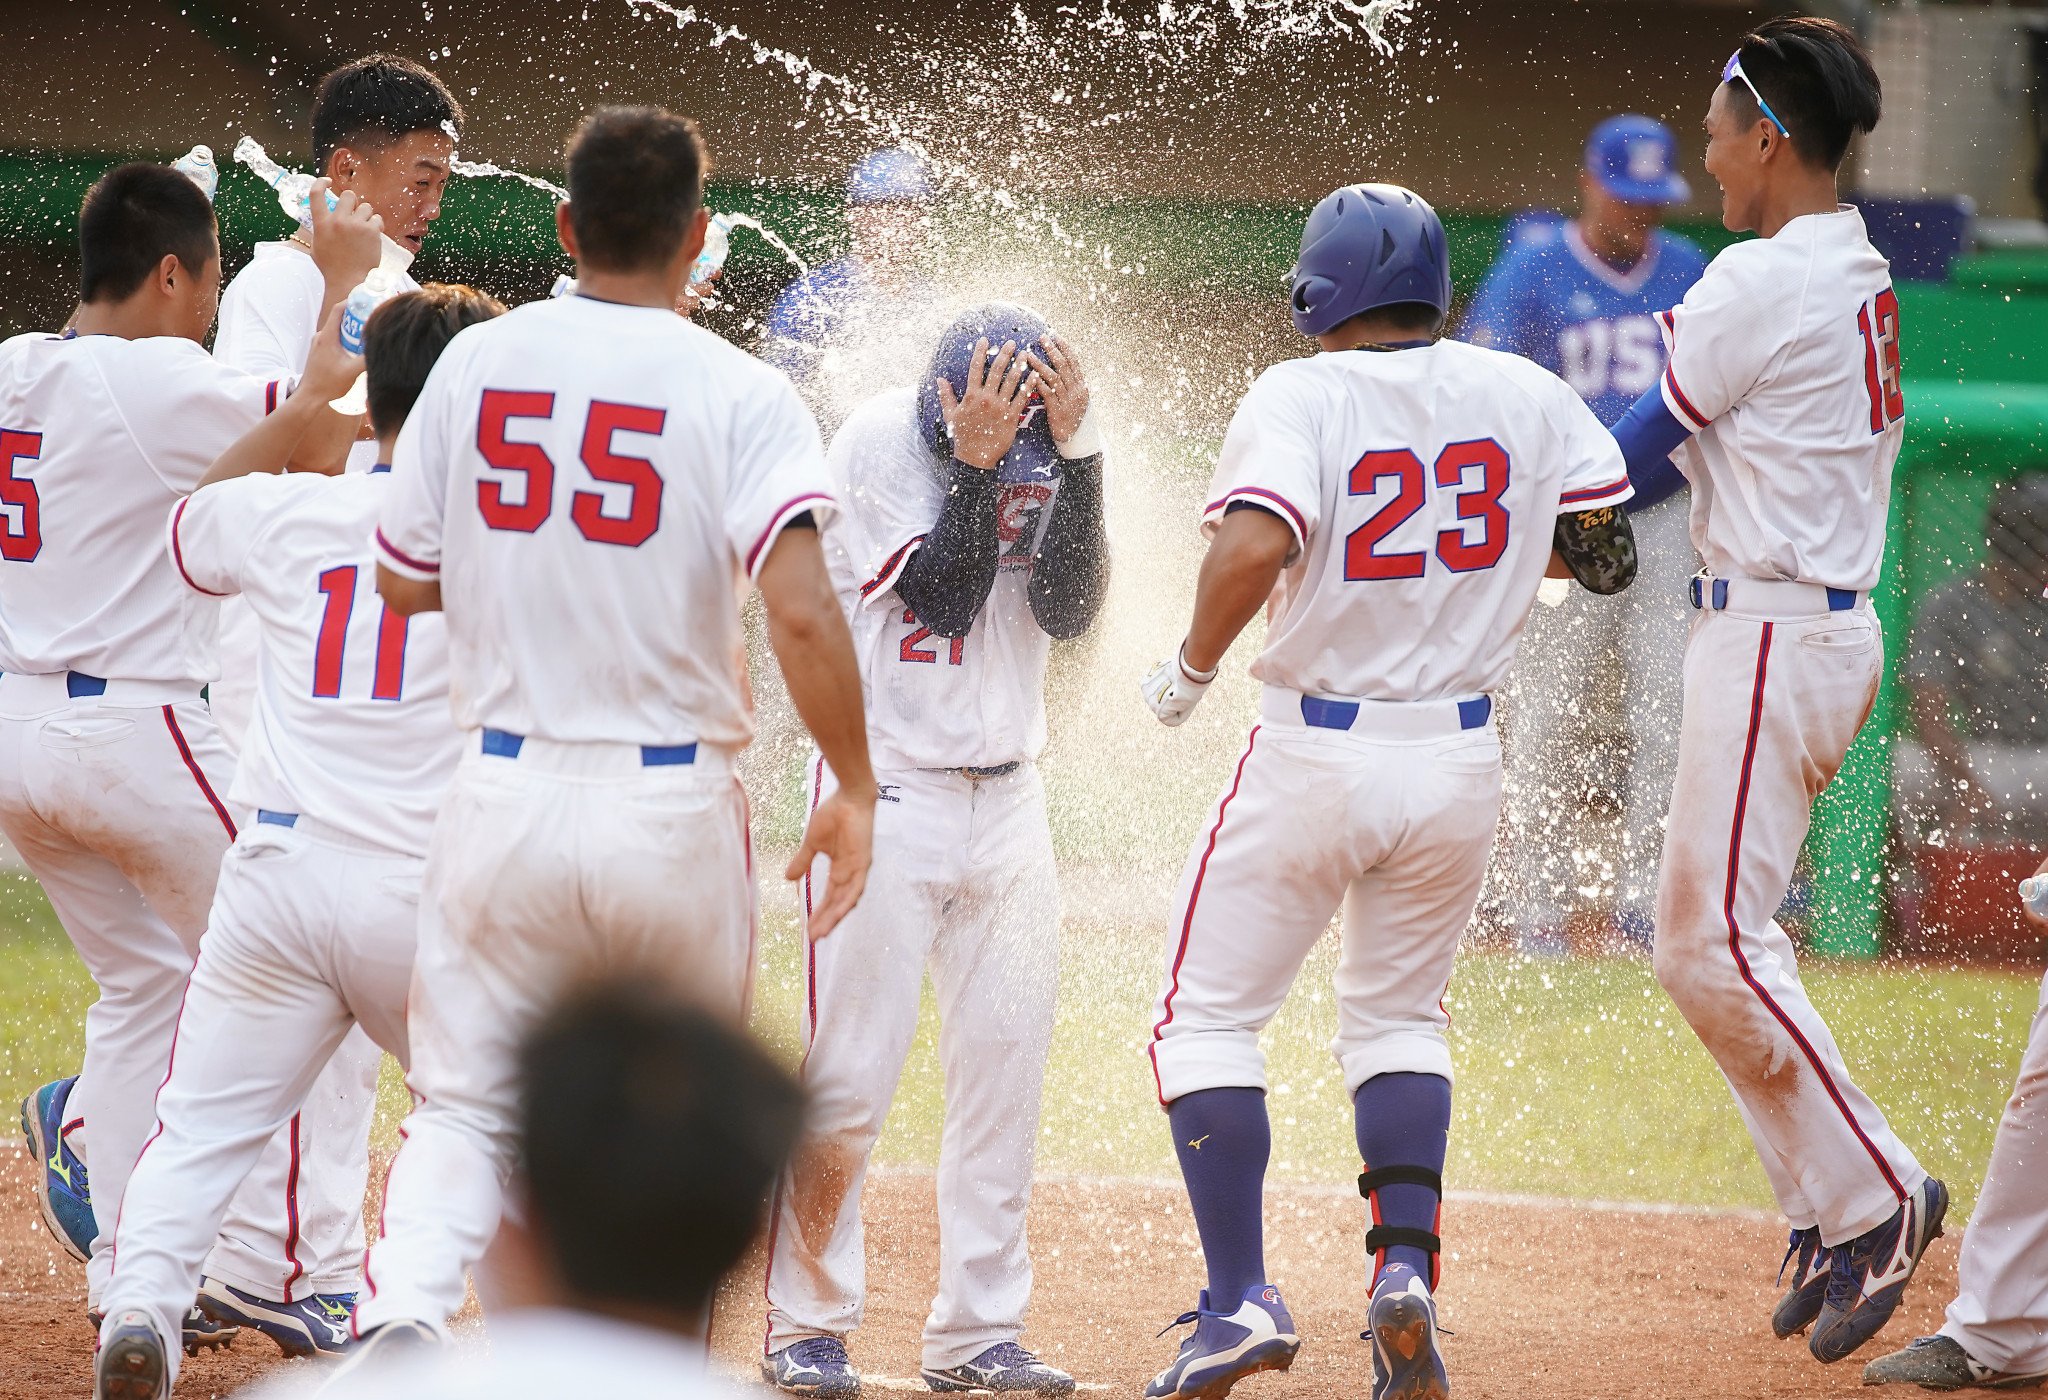 Chinese Taipei beat the United States in a thriller at the World University Baseball Championship ©FISU